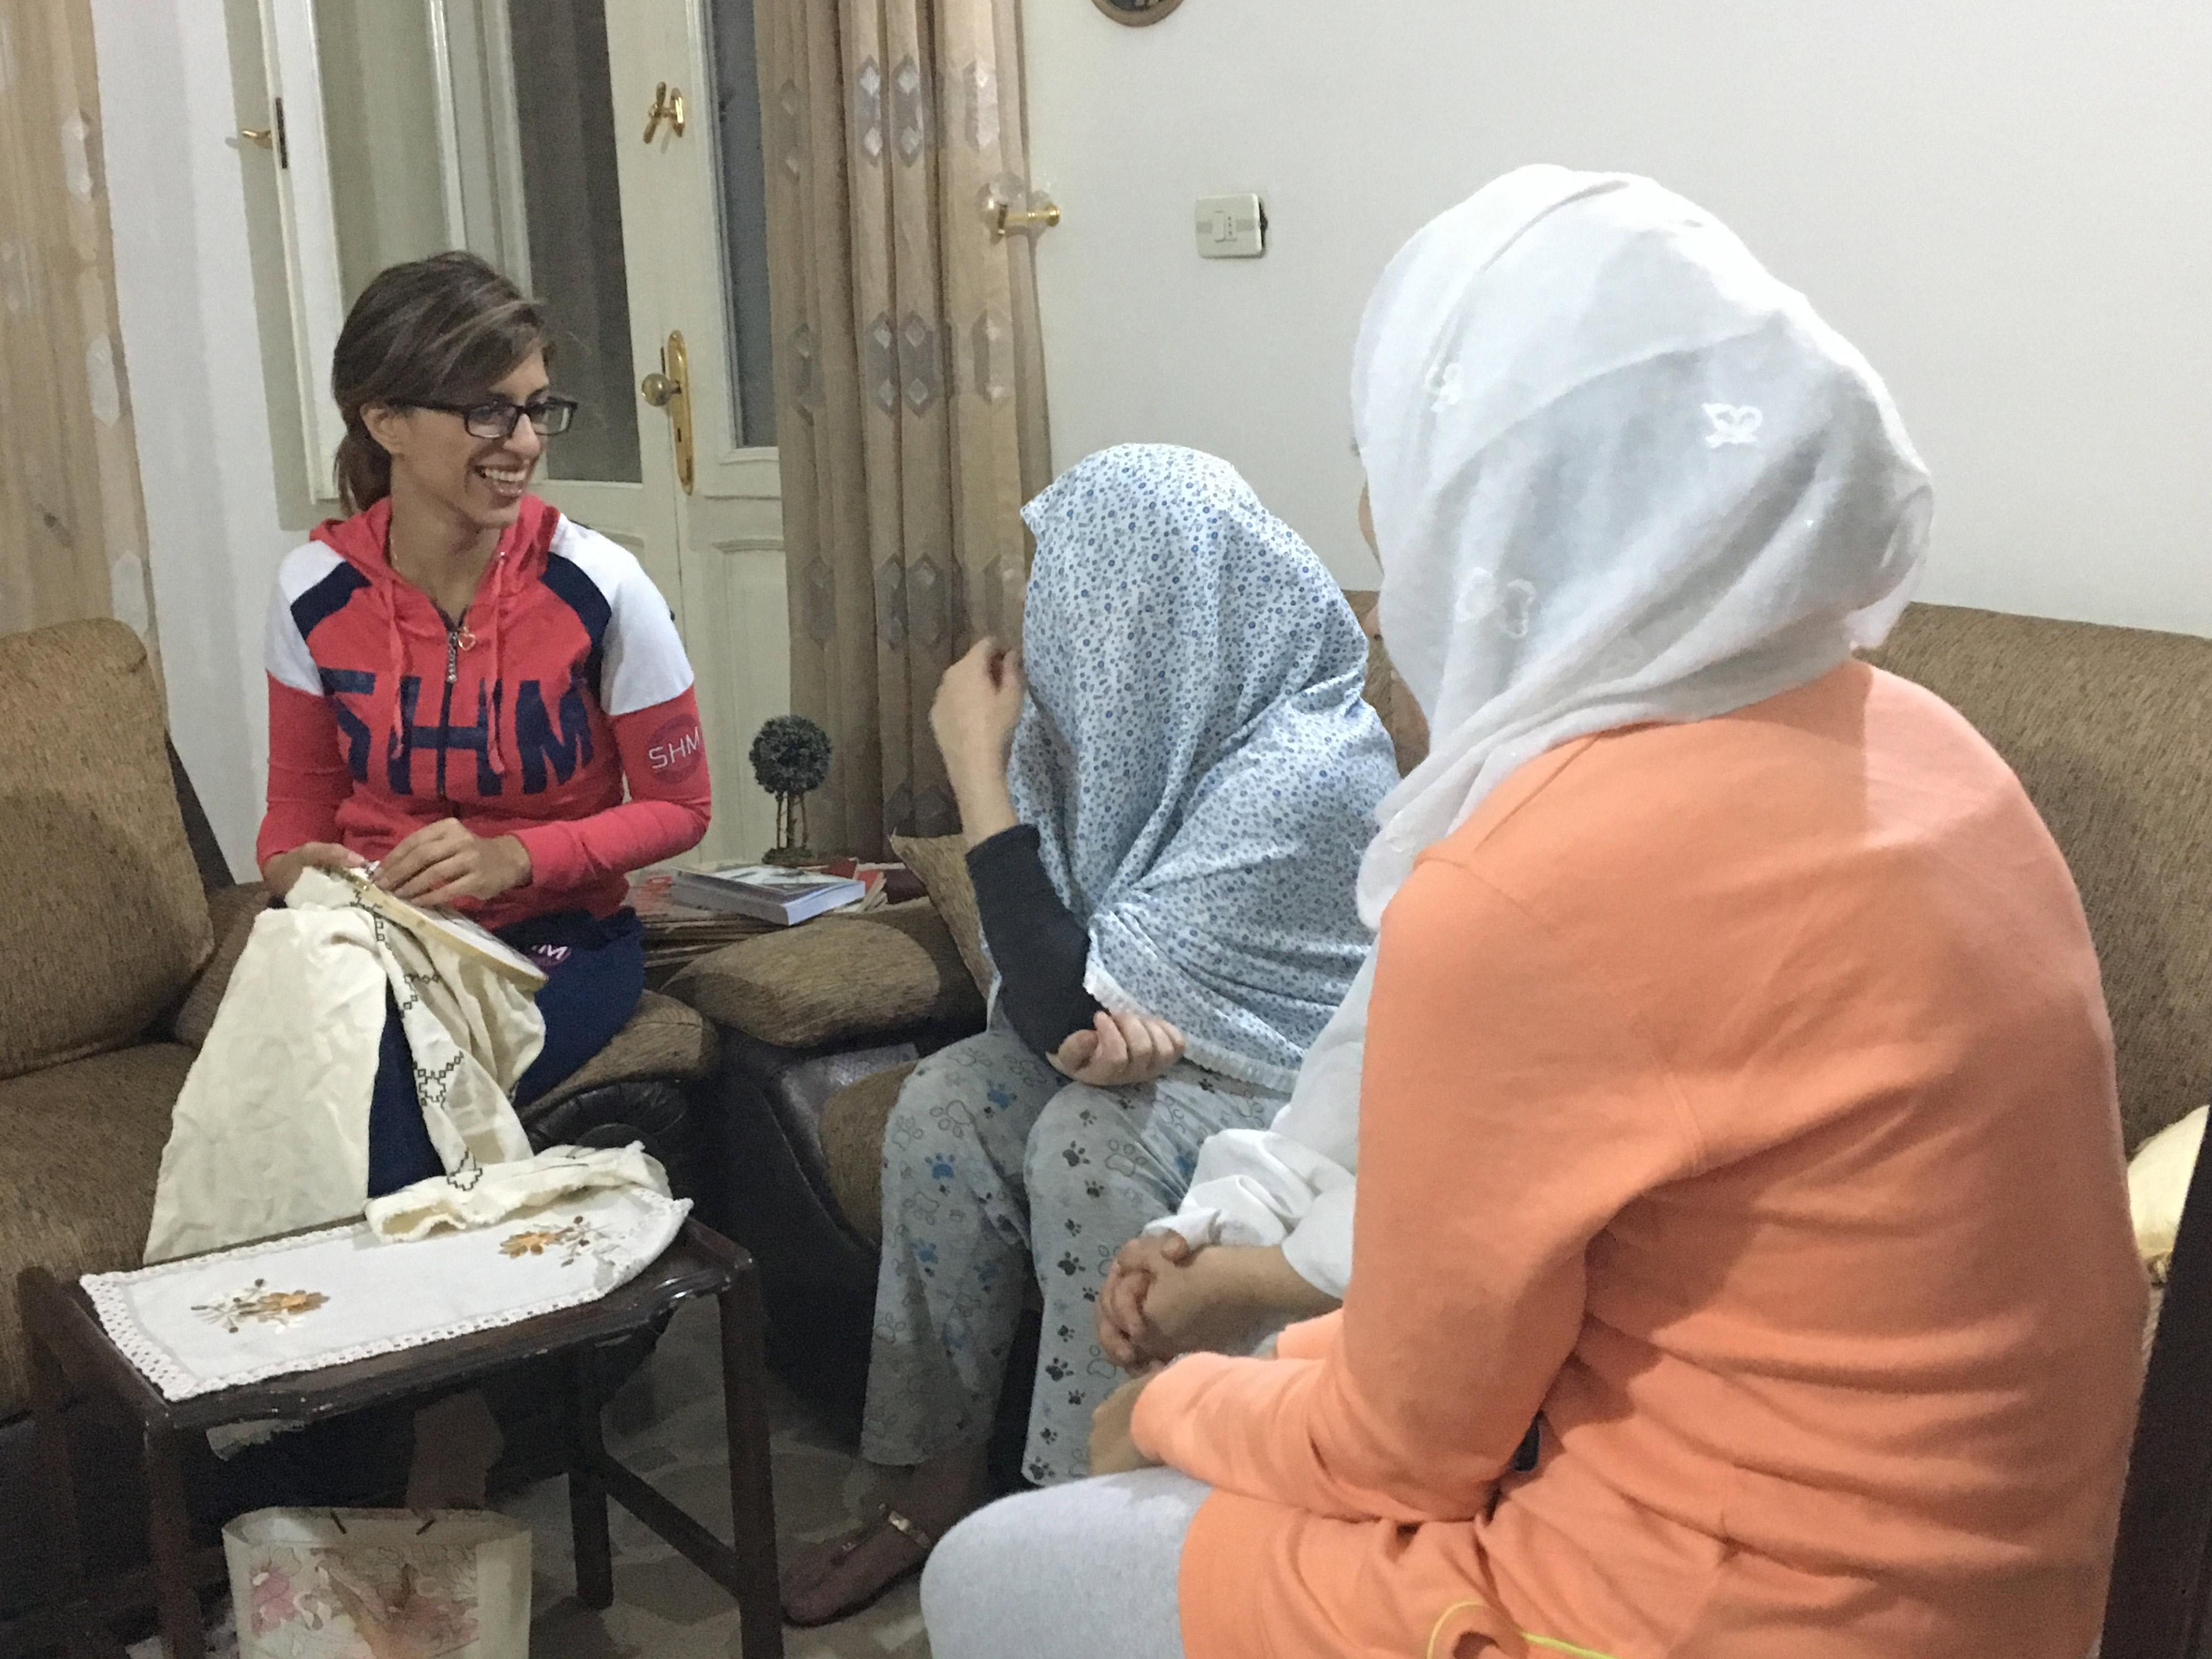 A group of women sitting and talking.